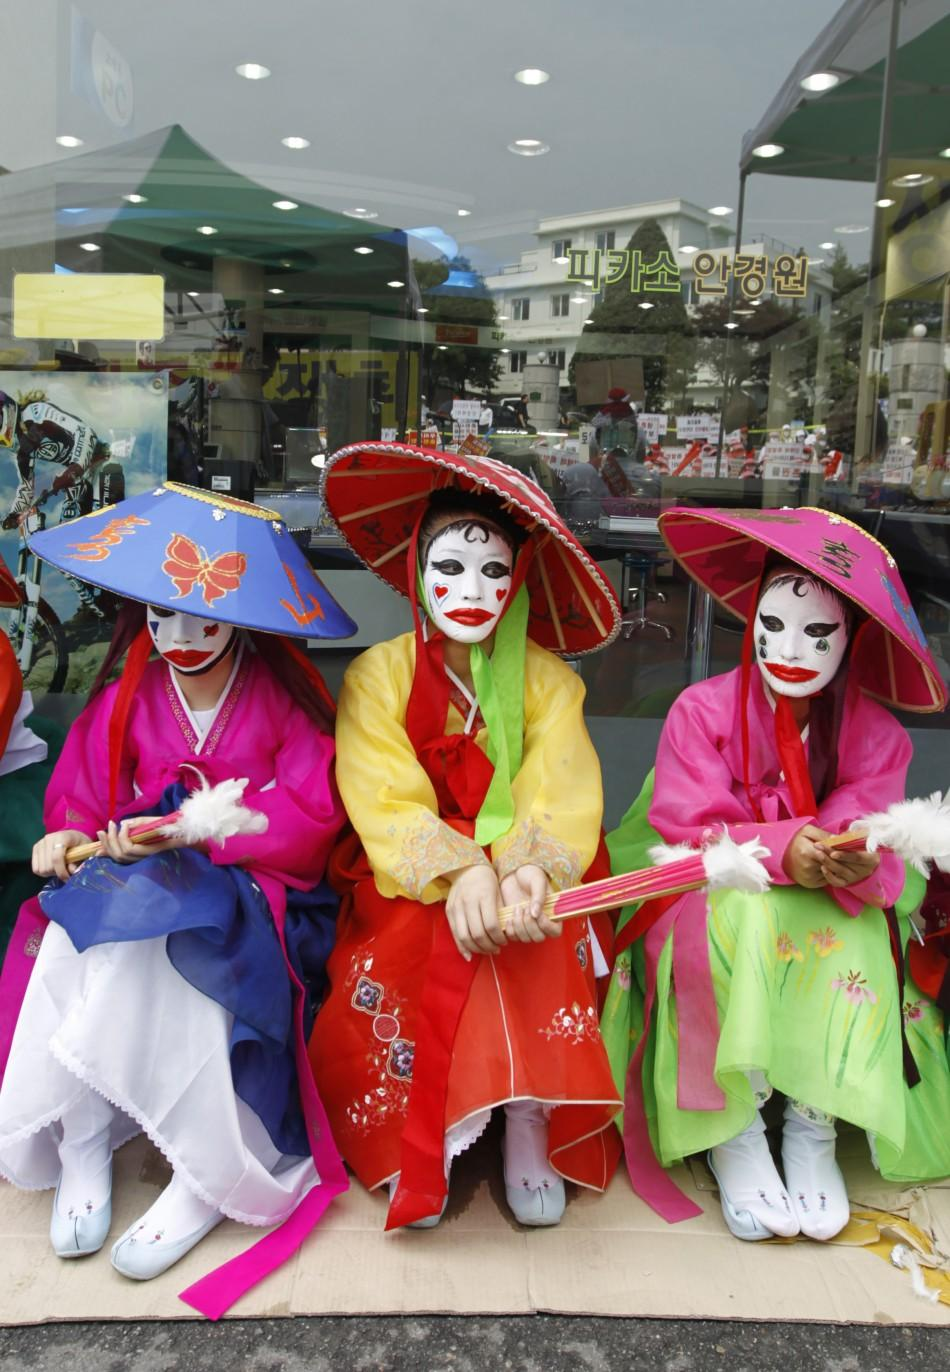 Face-painted prostitutes protest for police's crackdown on brothels